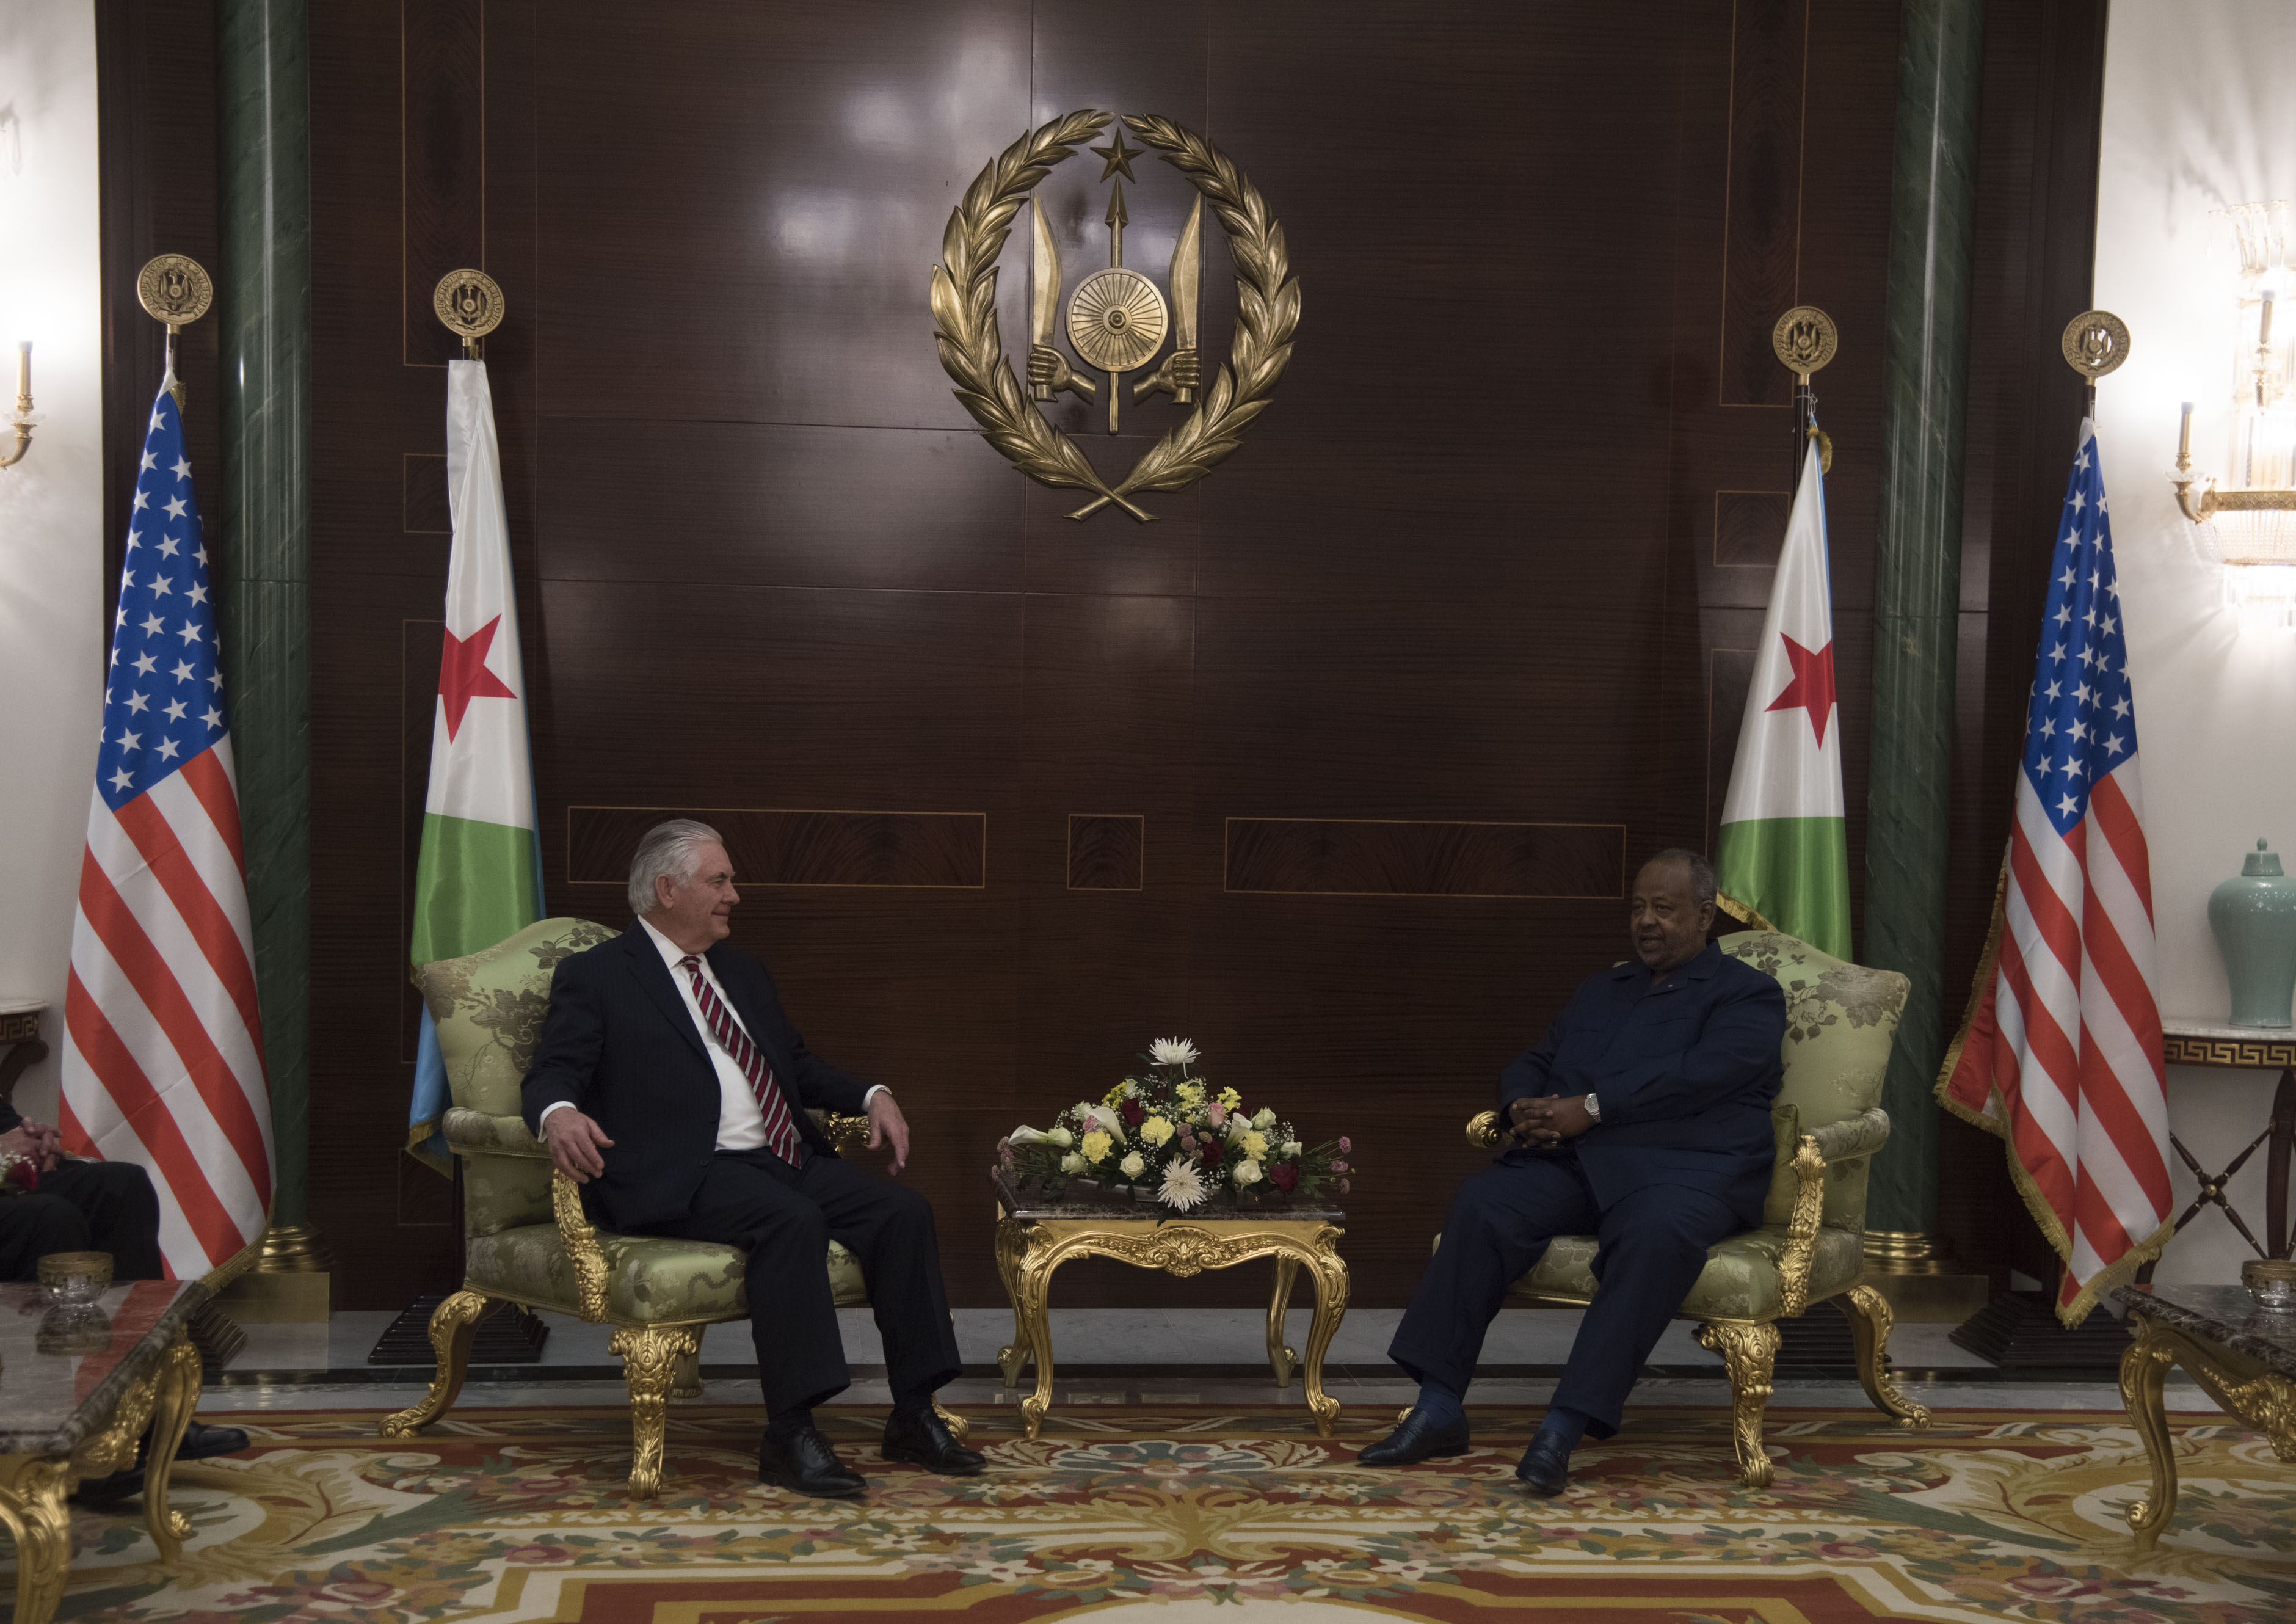 U. S. Secretary of State Rex Tillerson meets with President Ismail Omar Guelleh at the Presidential Palace, Djibouti, March 9. 2018. Secretary Tillerson also met with Djiboutian Foreign Minister Mahmoud Ali Youssouf in Djibouti to discuss the U.S.-Djiboutian partnership, and exchanged views on bilateral concerns, security threats, and economic reforms. (U.S. Air National Guard photo by Staff Sgt. Allyson L. Manners)